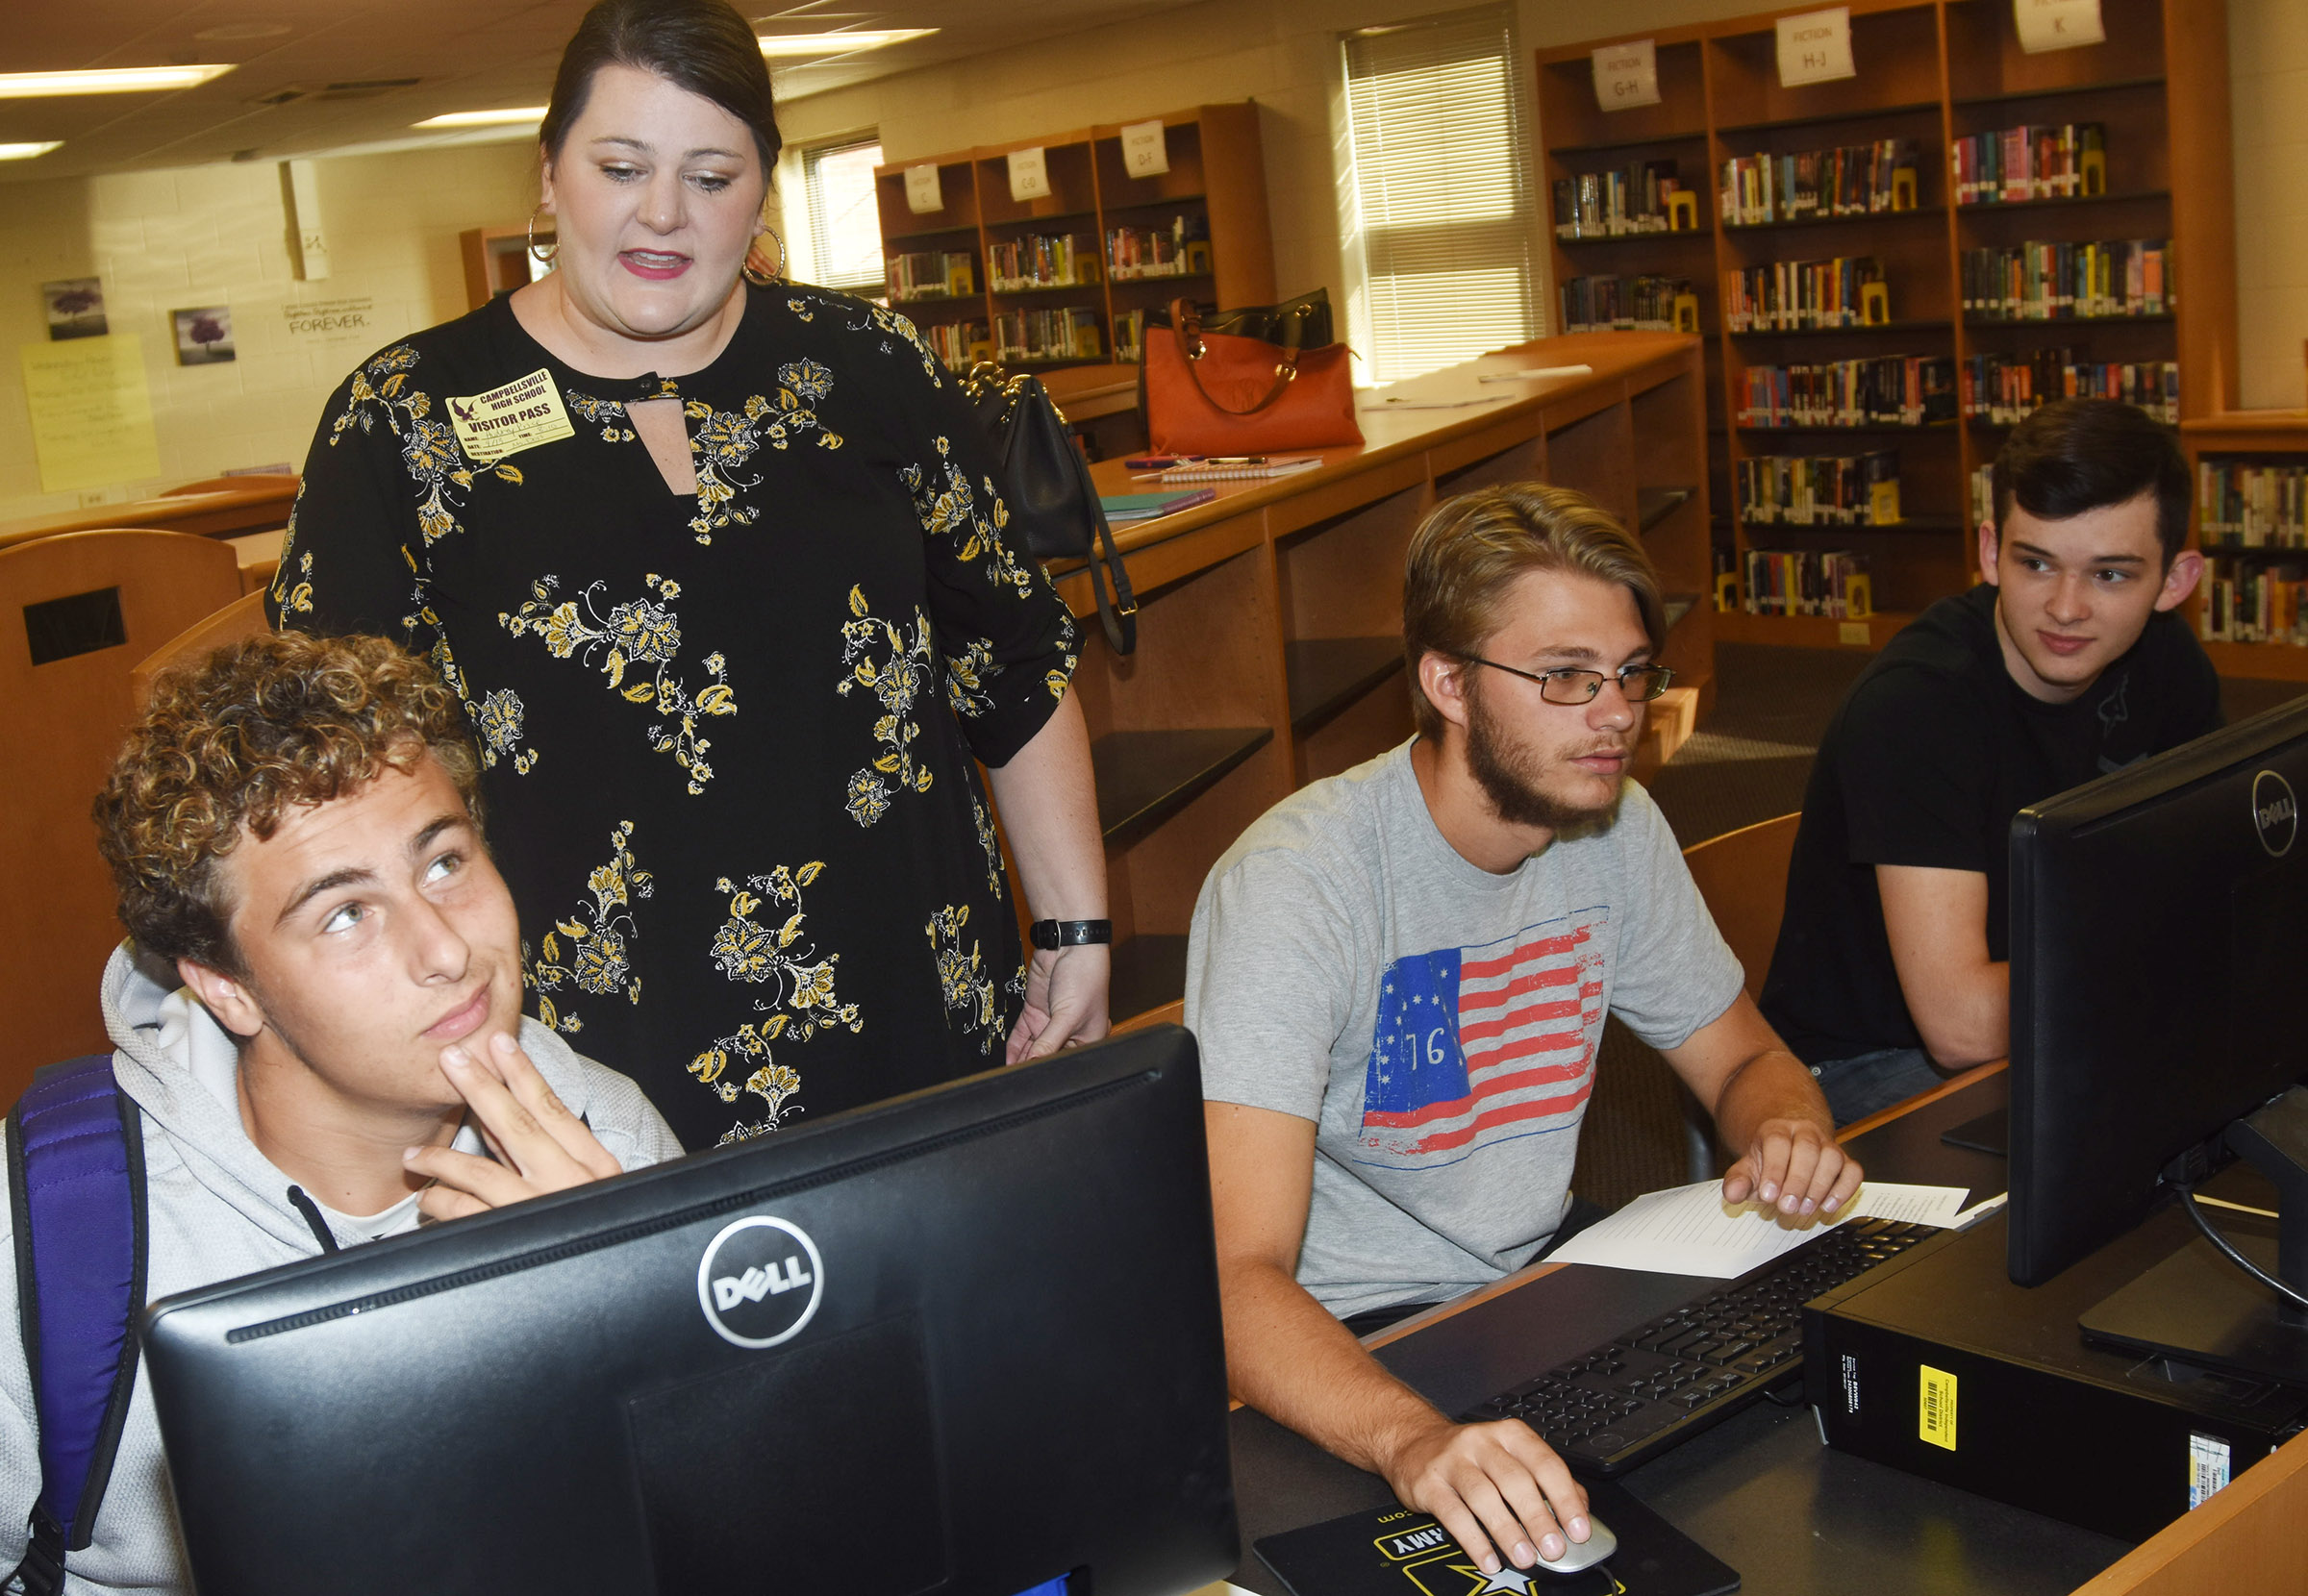 Audrey Price, southern Kentucky outreach counselor at Kentucky Higher Education Assistance Authority, helps CHS students, from left, Brody Weeks, Keidlan Boils and Cameron Bohannon as they apply to attend college.